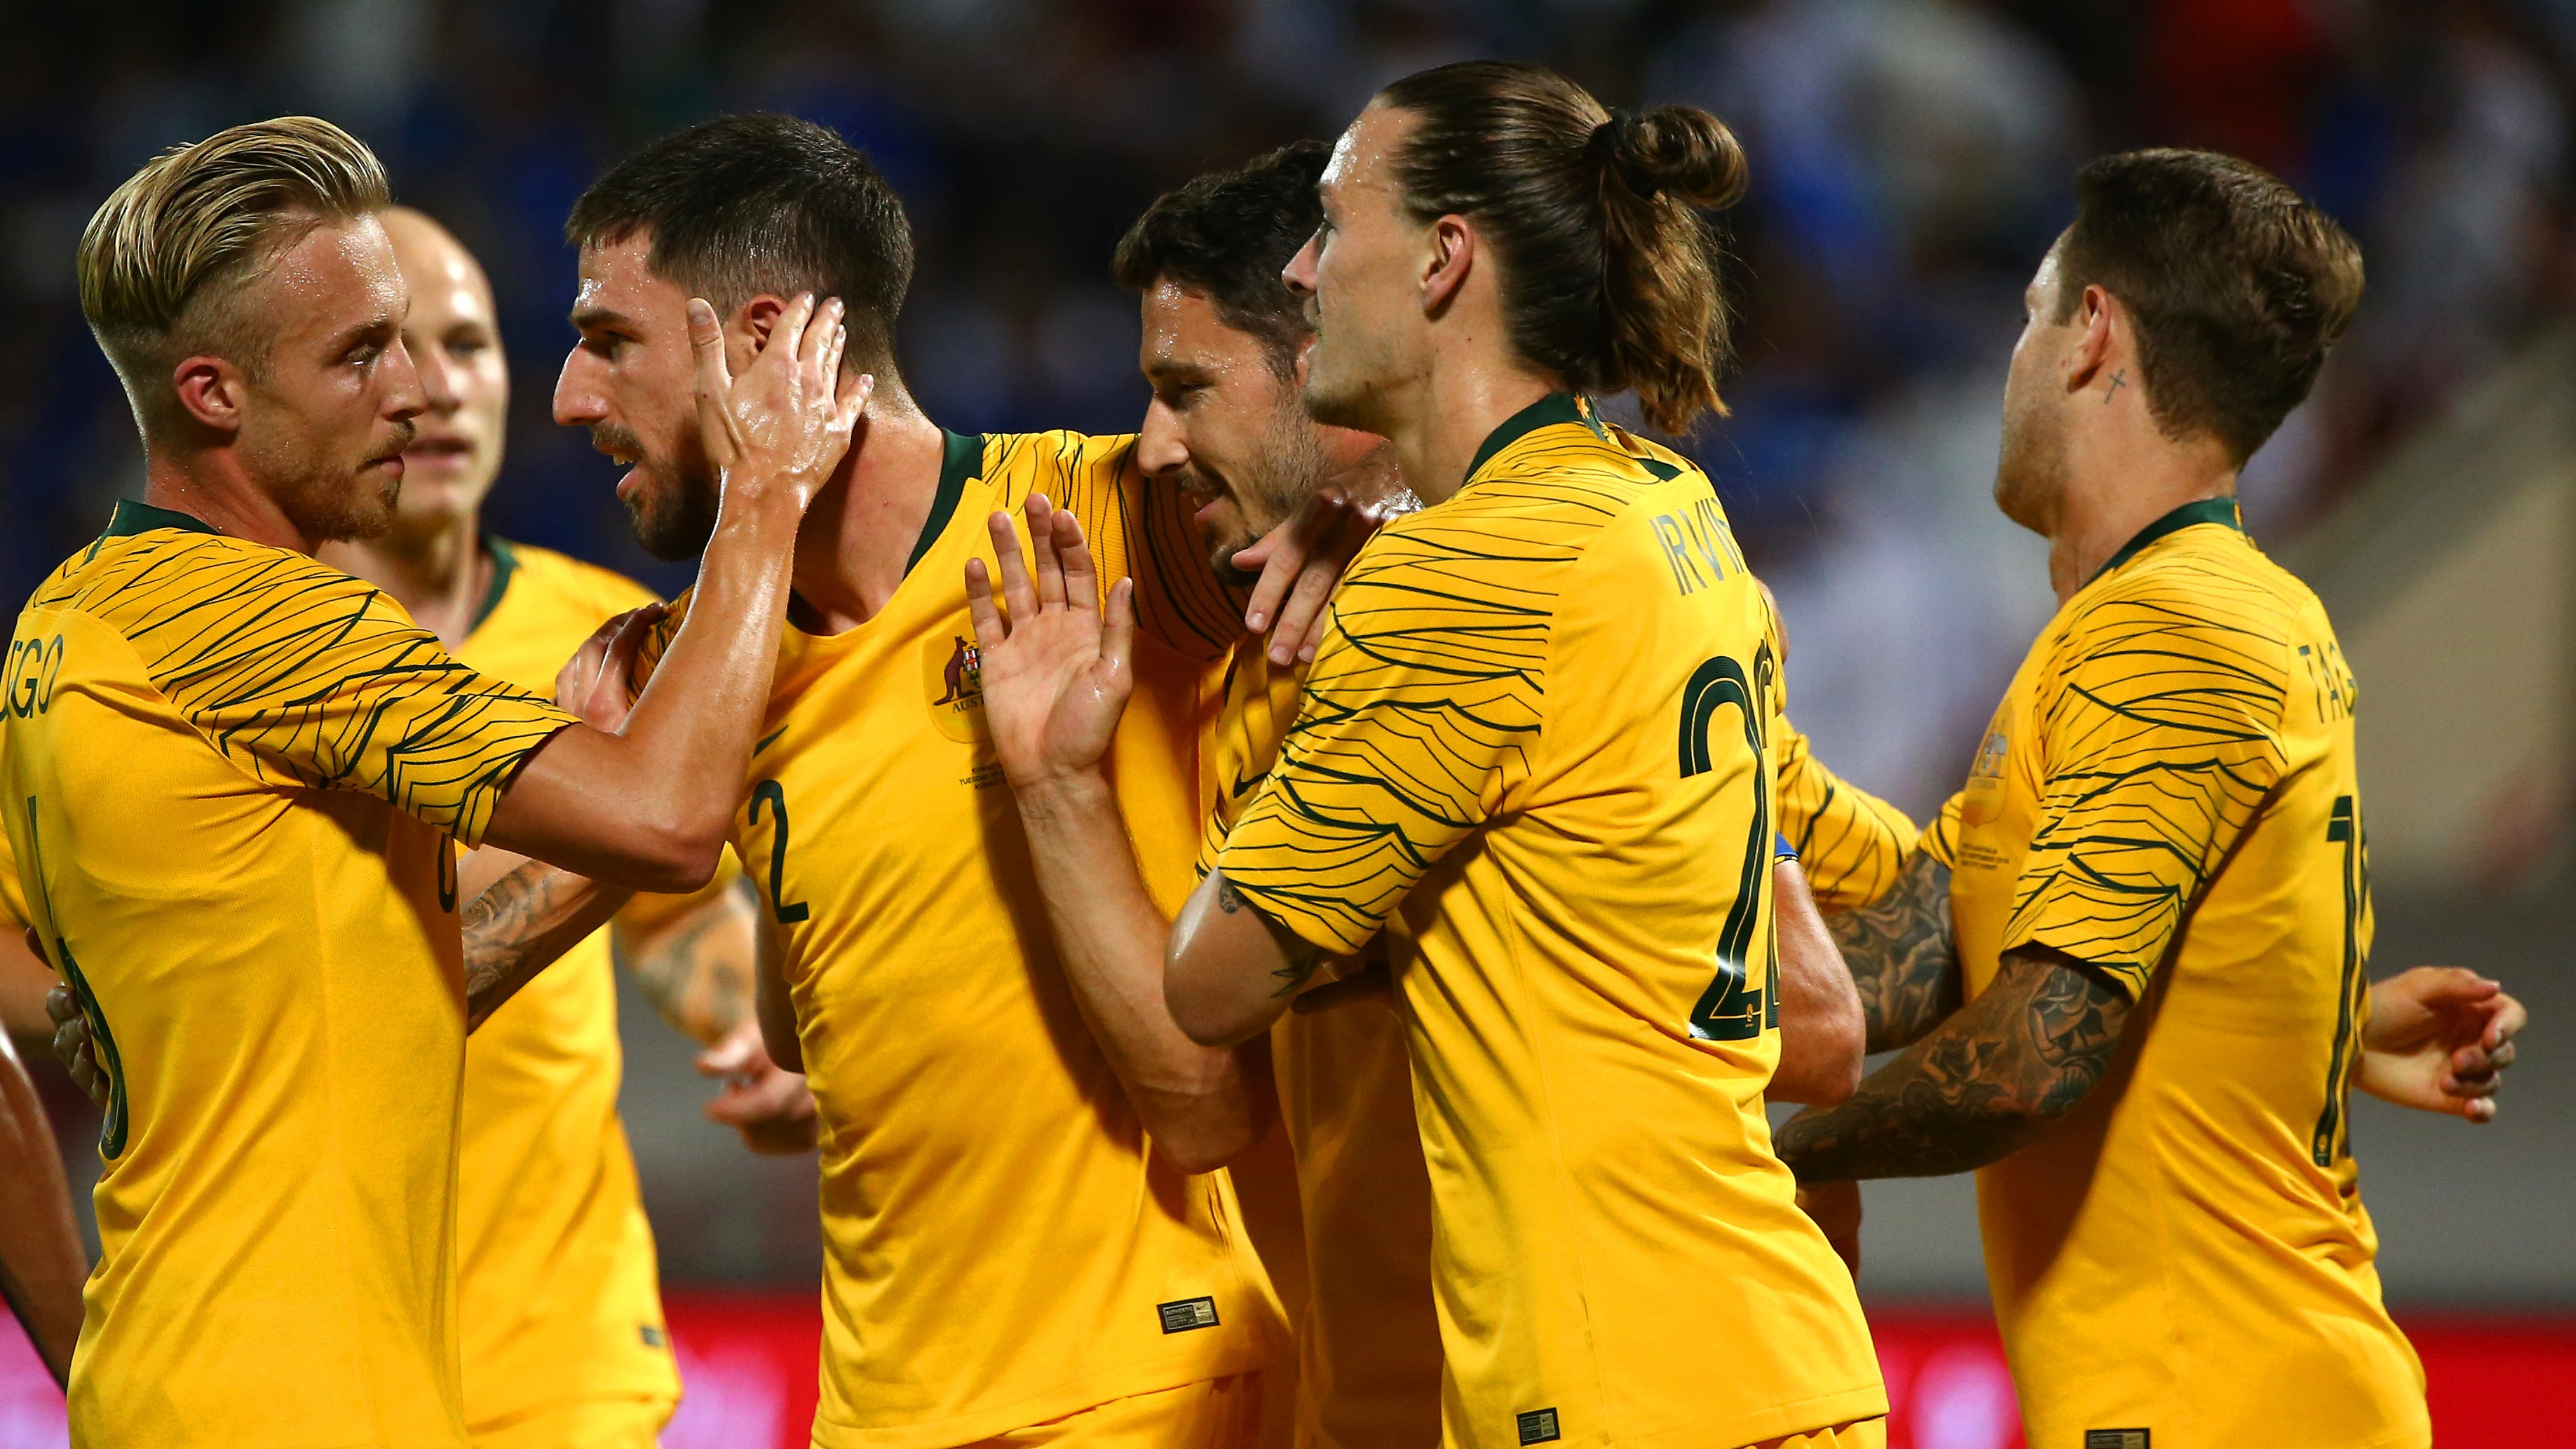 Jordan vs Australia Betting Tips: Latest odds, team news, preview and predictions